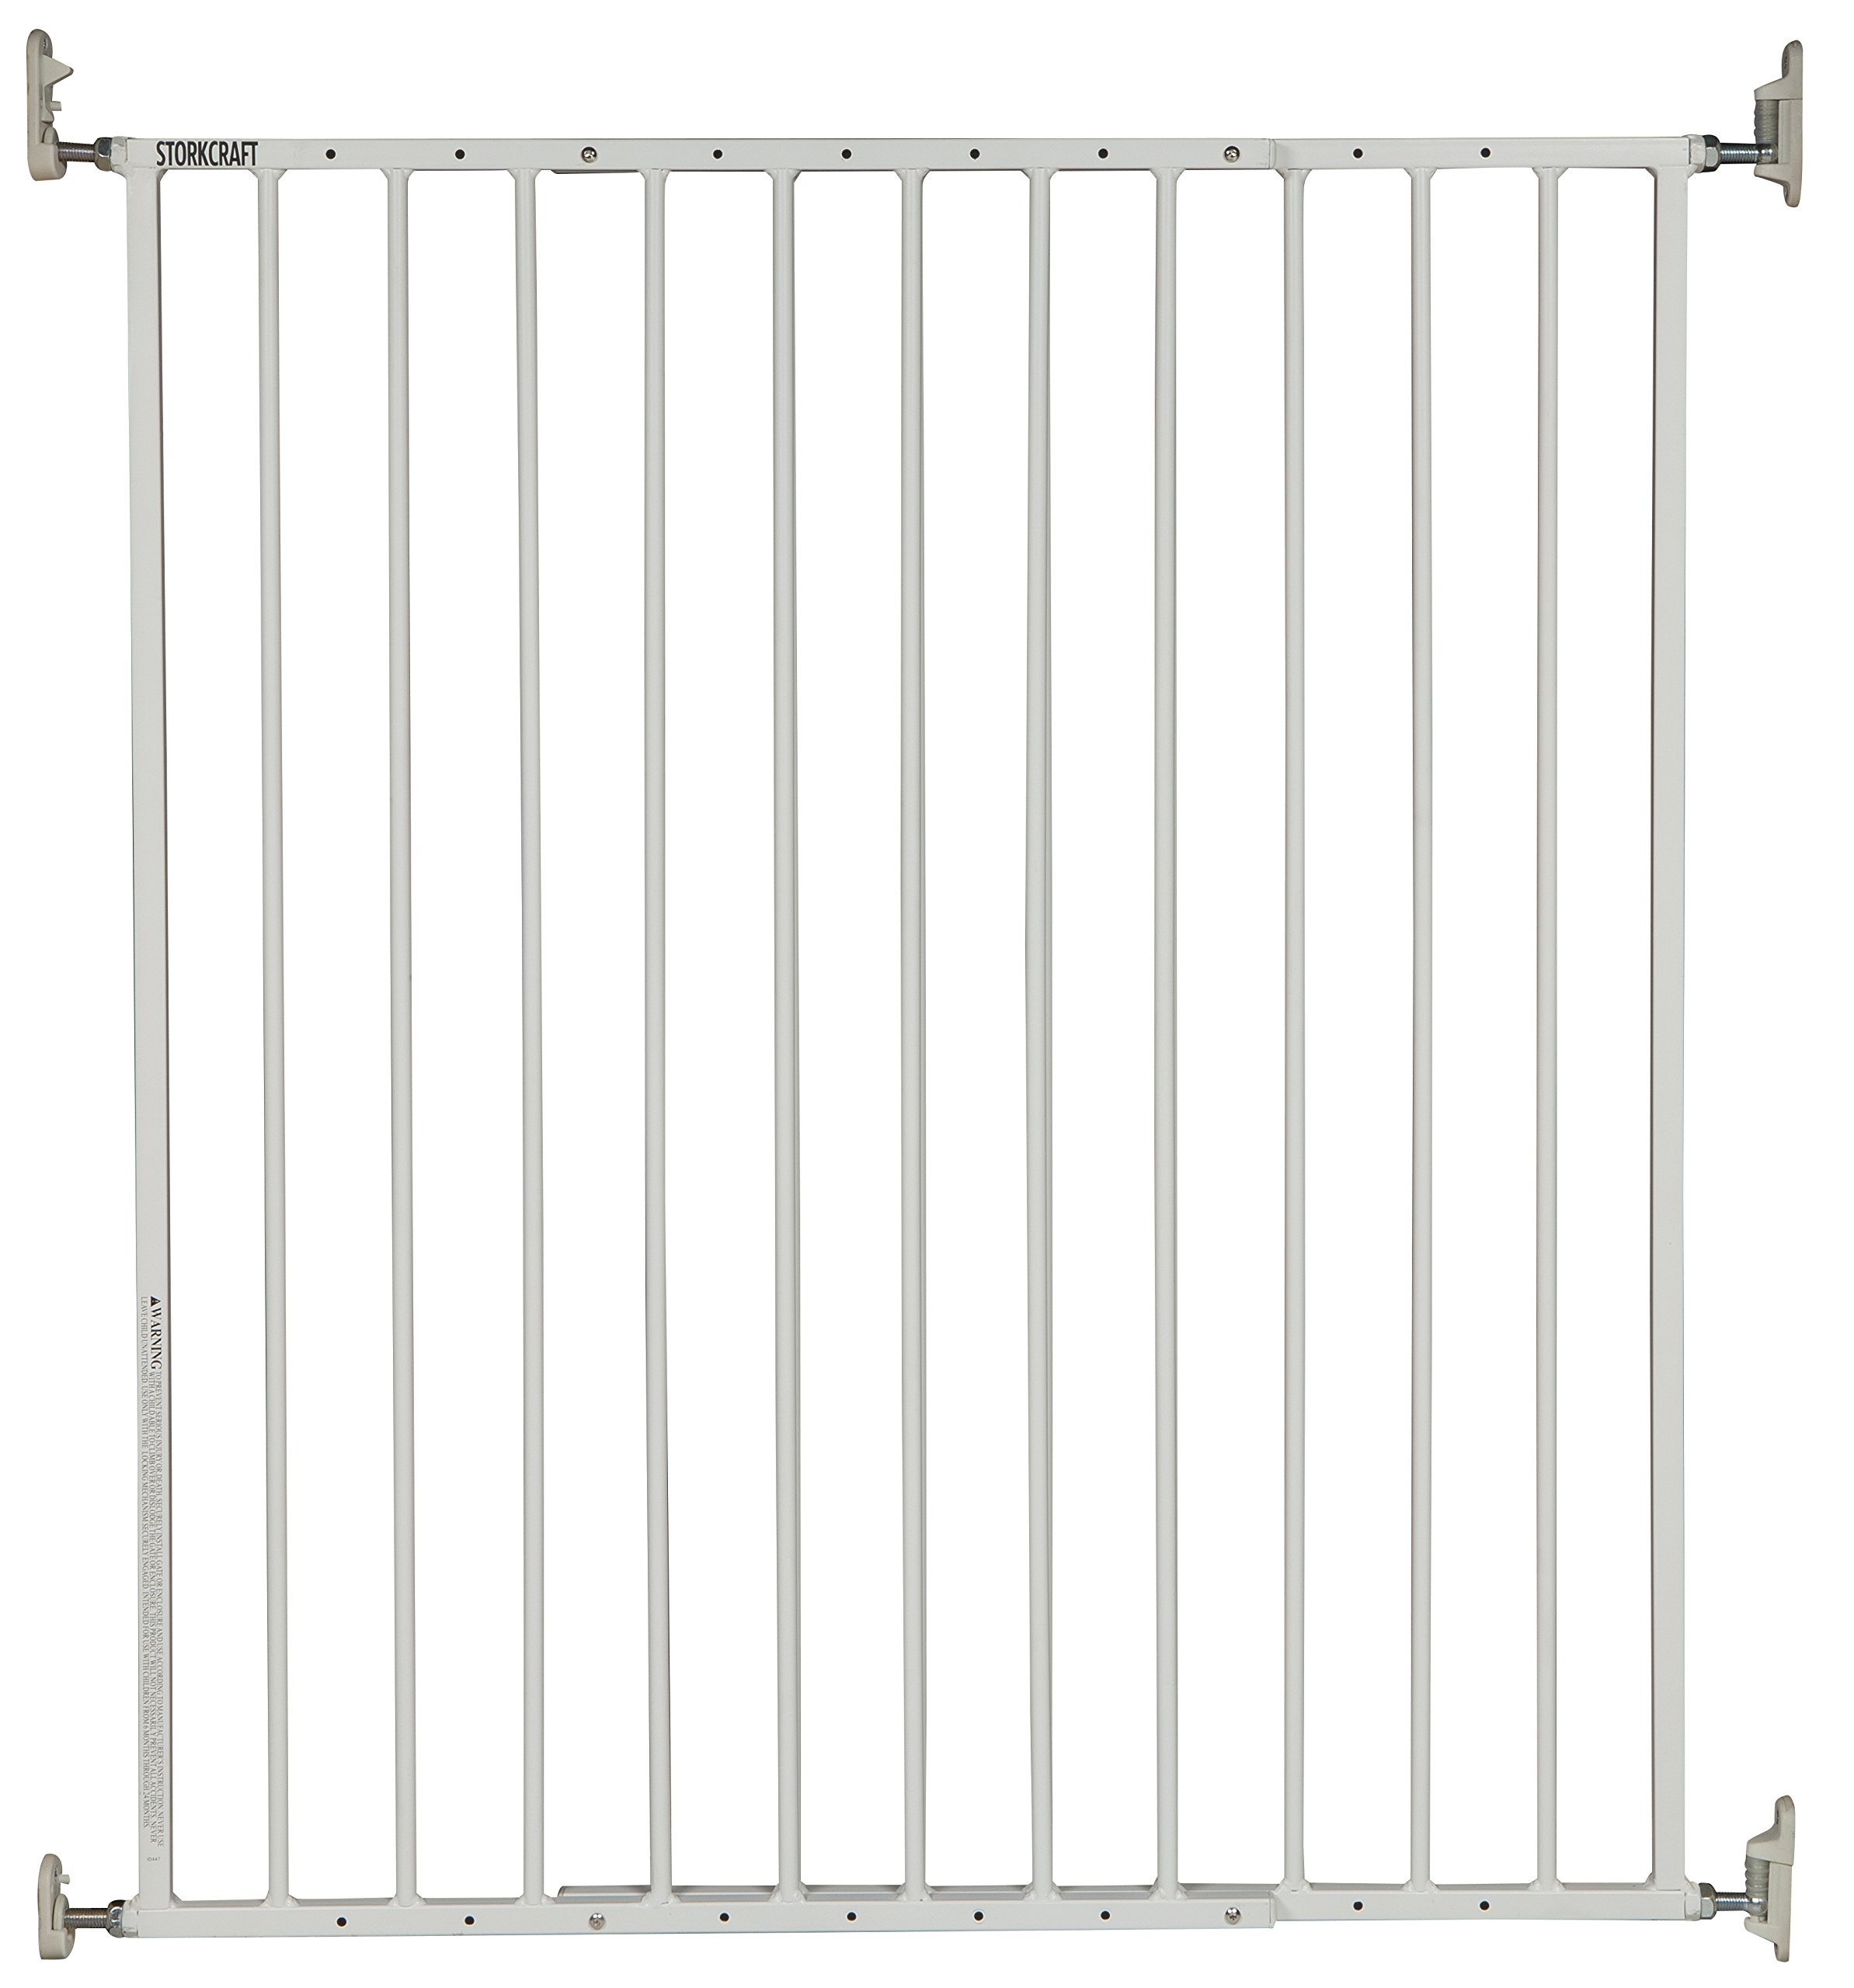 Storkcraft Easy Walk-Thru Tall Metal Safety Gate, White Adjustable Baby Safety Gate For Doorways and Stairs, Great for Children and Pets